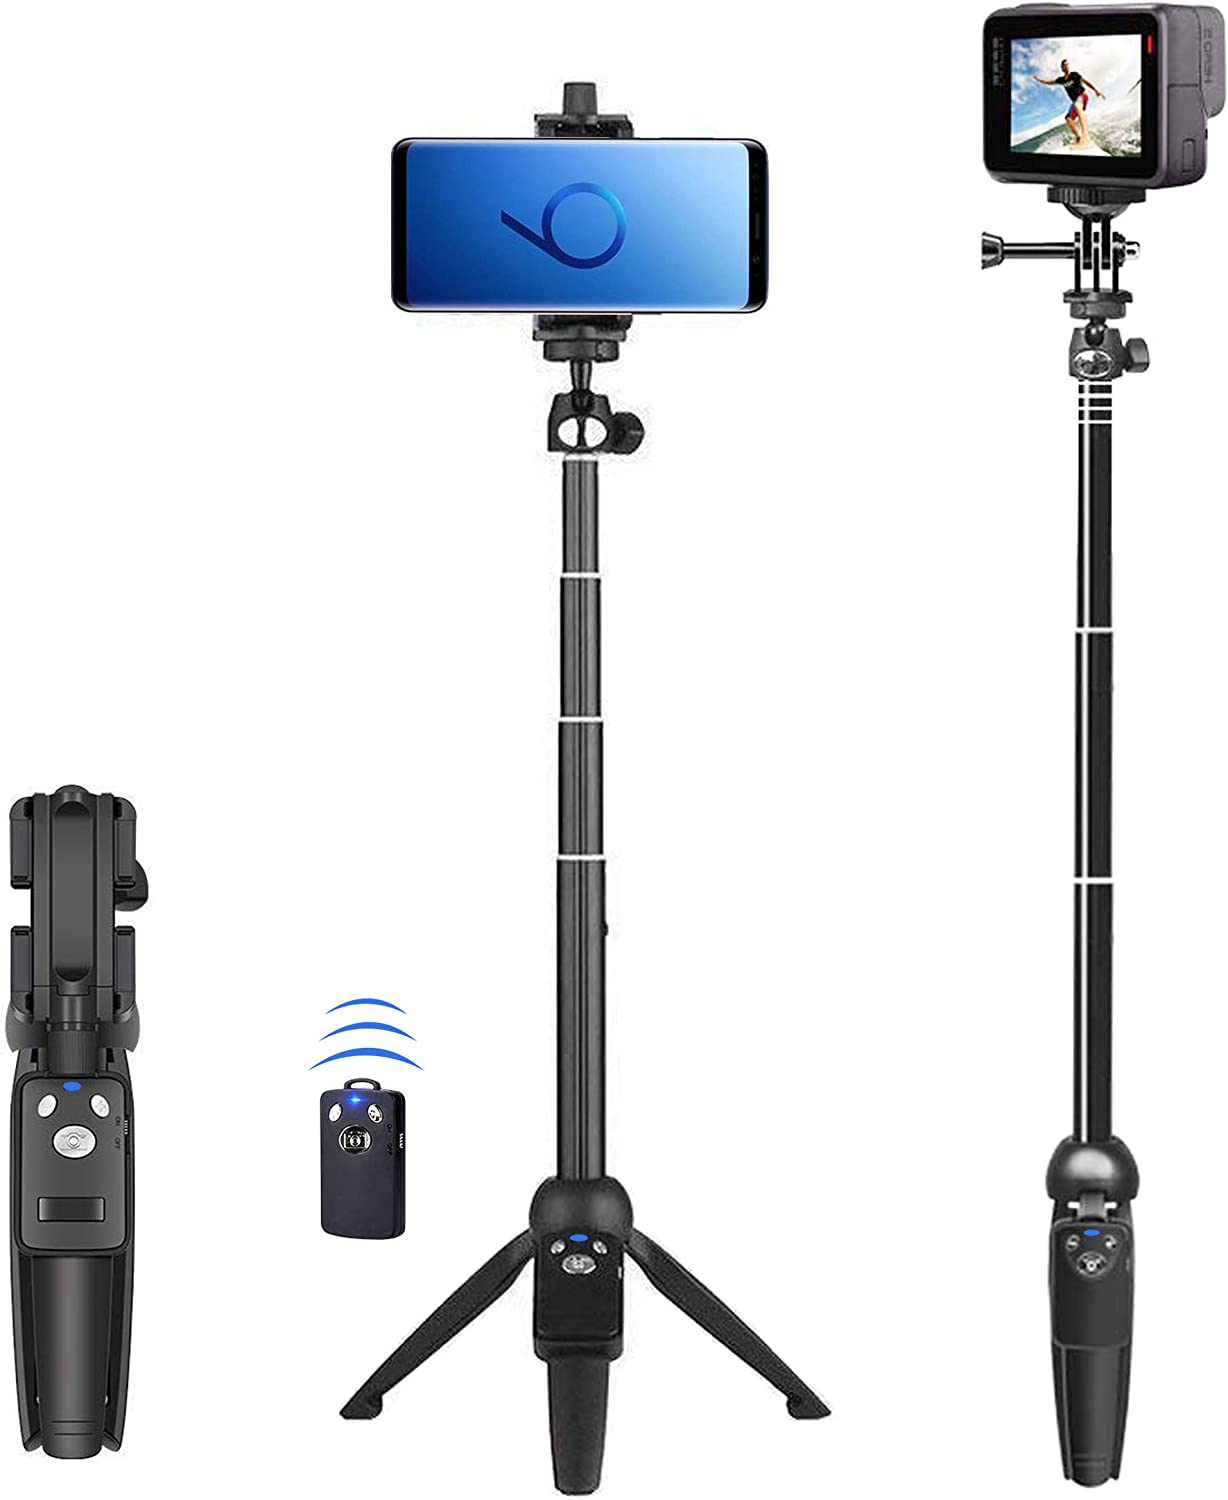 Selfie Stick, 40 inch Extendable Selfie Stick Tripod,Phone Tripod with Wireless Remote Shutter Compatible with Phone 11 11 pro Xs Max Xr X 8Plus 7, Android, Samsung Galaxy S10 S9,Gopro and More